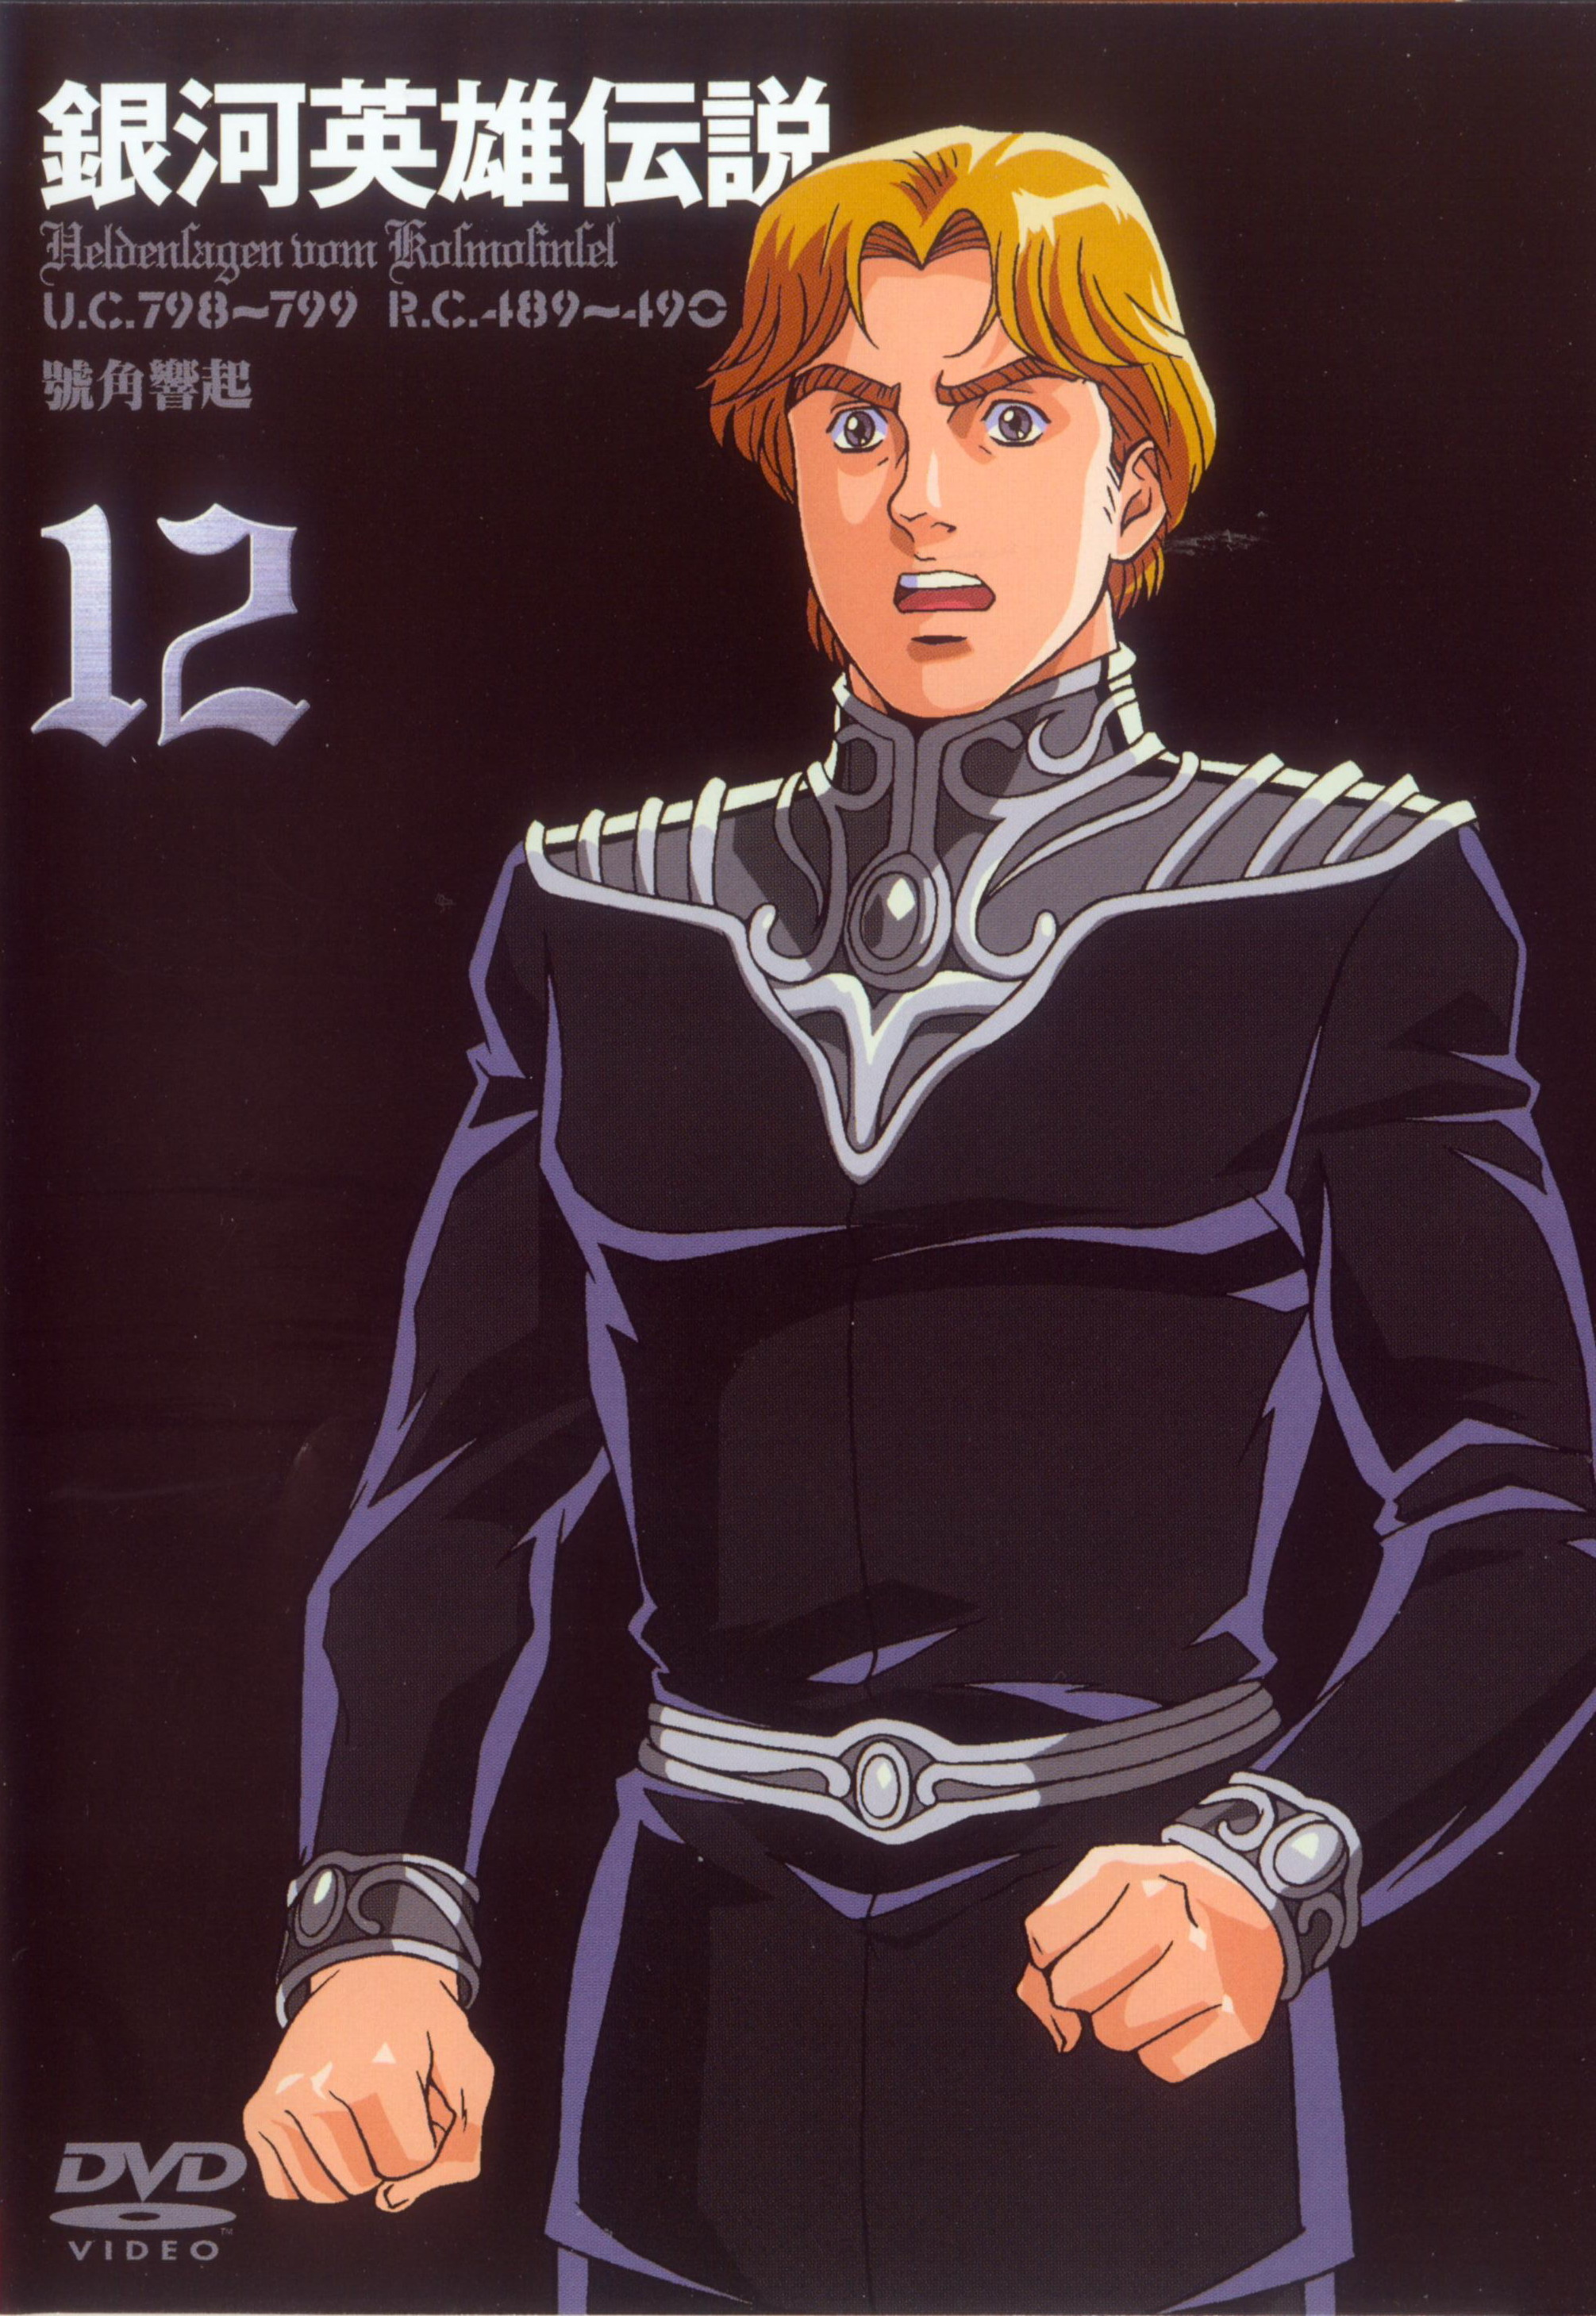 Wolfgang Mittermeyer - Gineipaedia, the Legend of Galactic Heroes wiki